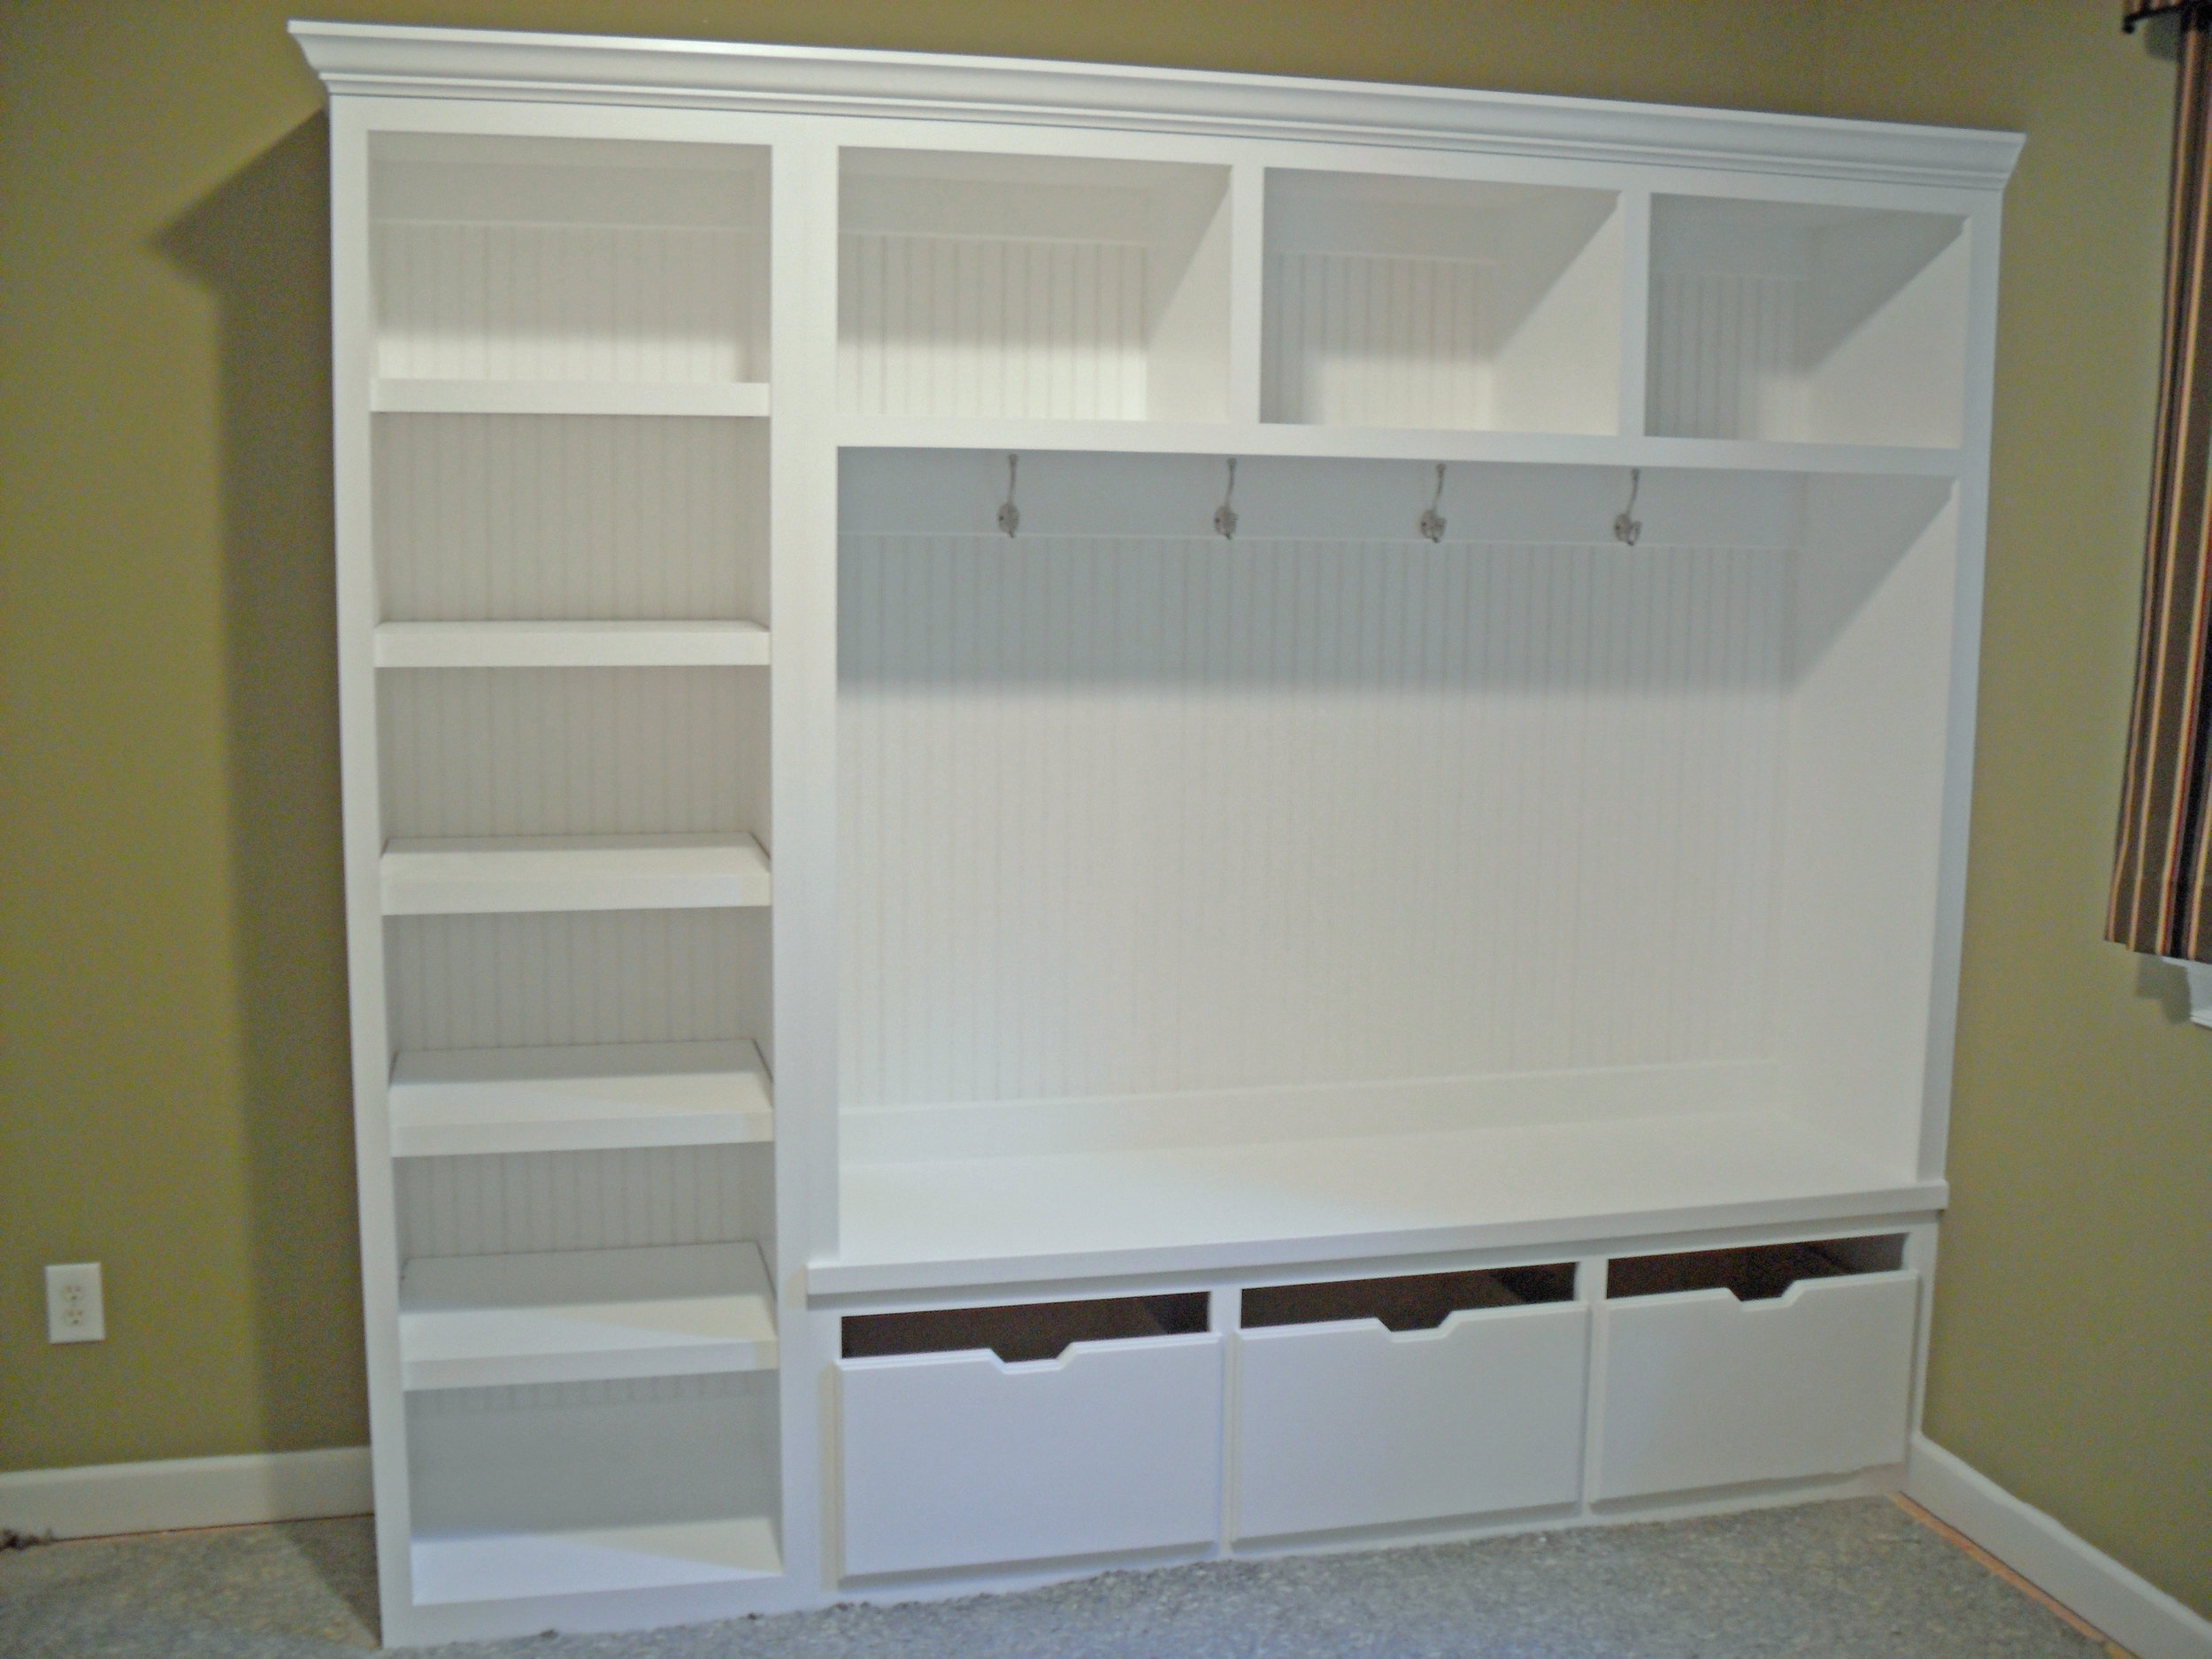 Mud Bench with Beadboard Backer, Adjustable Shelves, Open Cubbies, Pullouts, and Crown